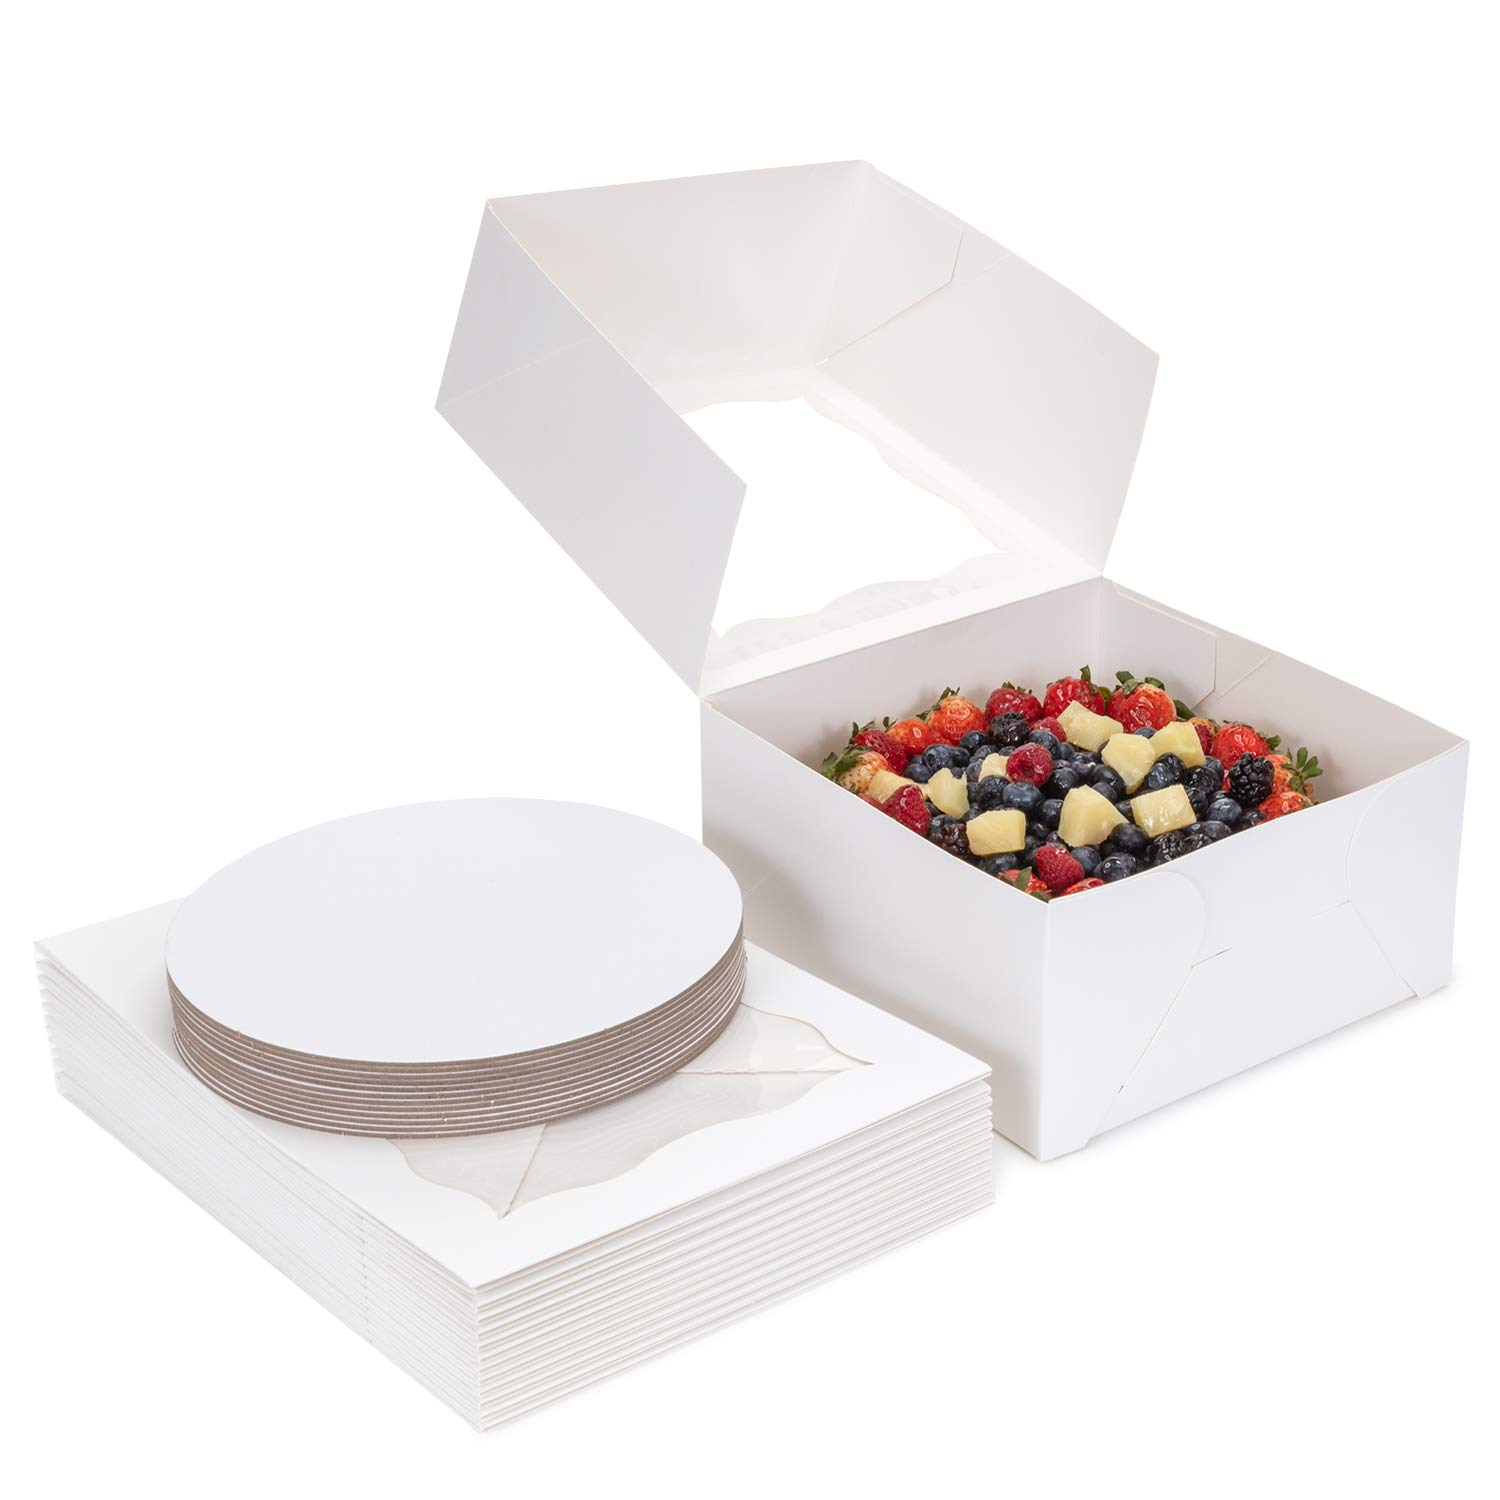 Bake Adore 12 Pack White 10x10x5 Cake Boxes 10 Inch Cake Box Boards Included - Sturdy Cake Boxes with Cake Boards 10 Inch Round Ideal for Transporting Baked Goods - Cake Boxes with Window Display